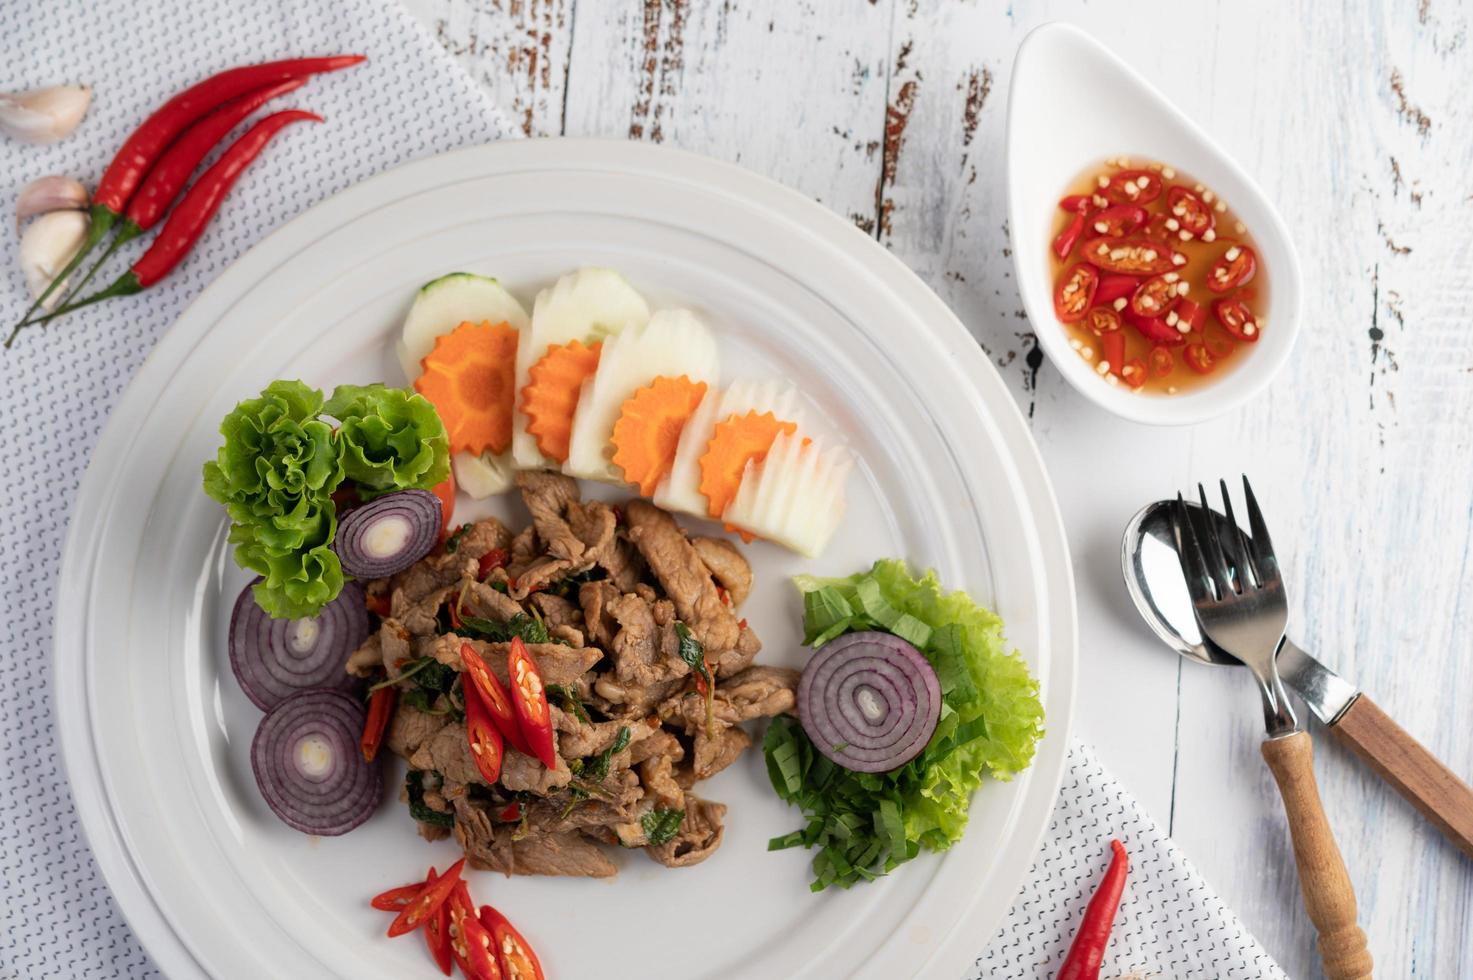 Stir-fried pork basil with carrots, cucumber and onion photo